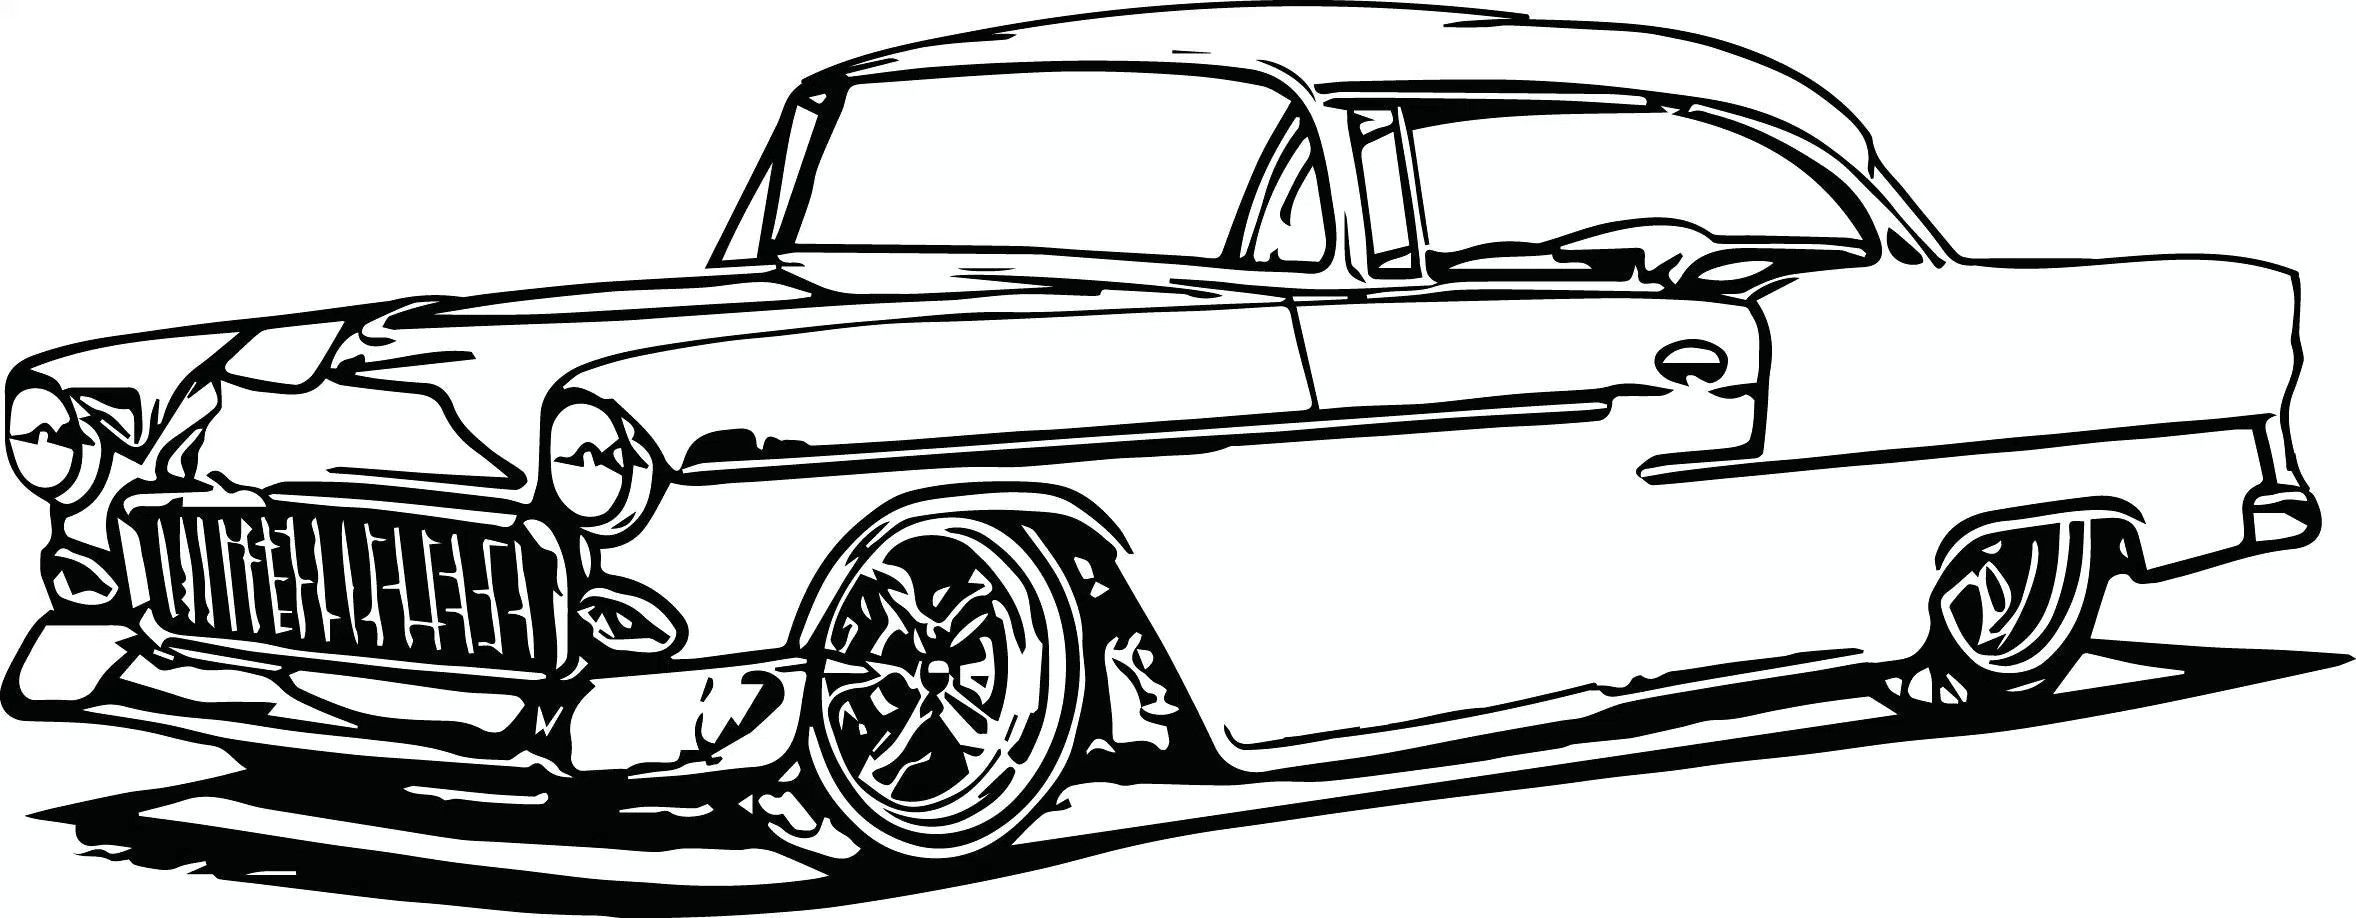 Muscle Car Coloring Pages Coloring Pages Printable Muscle Car Coloring Pages 4creative Free Entitlementtrap Com Cars Coloring Pages Old School Cars Truck Coloring Pages